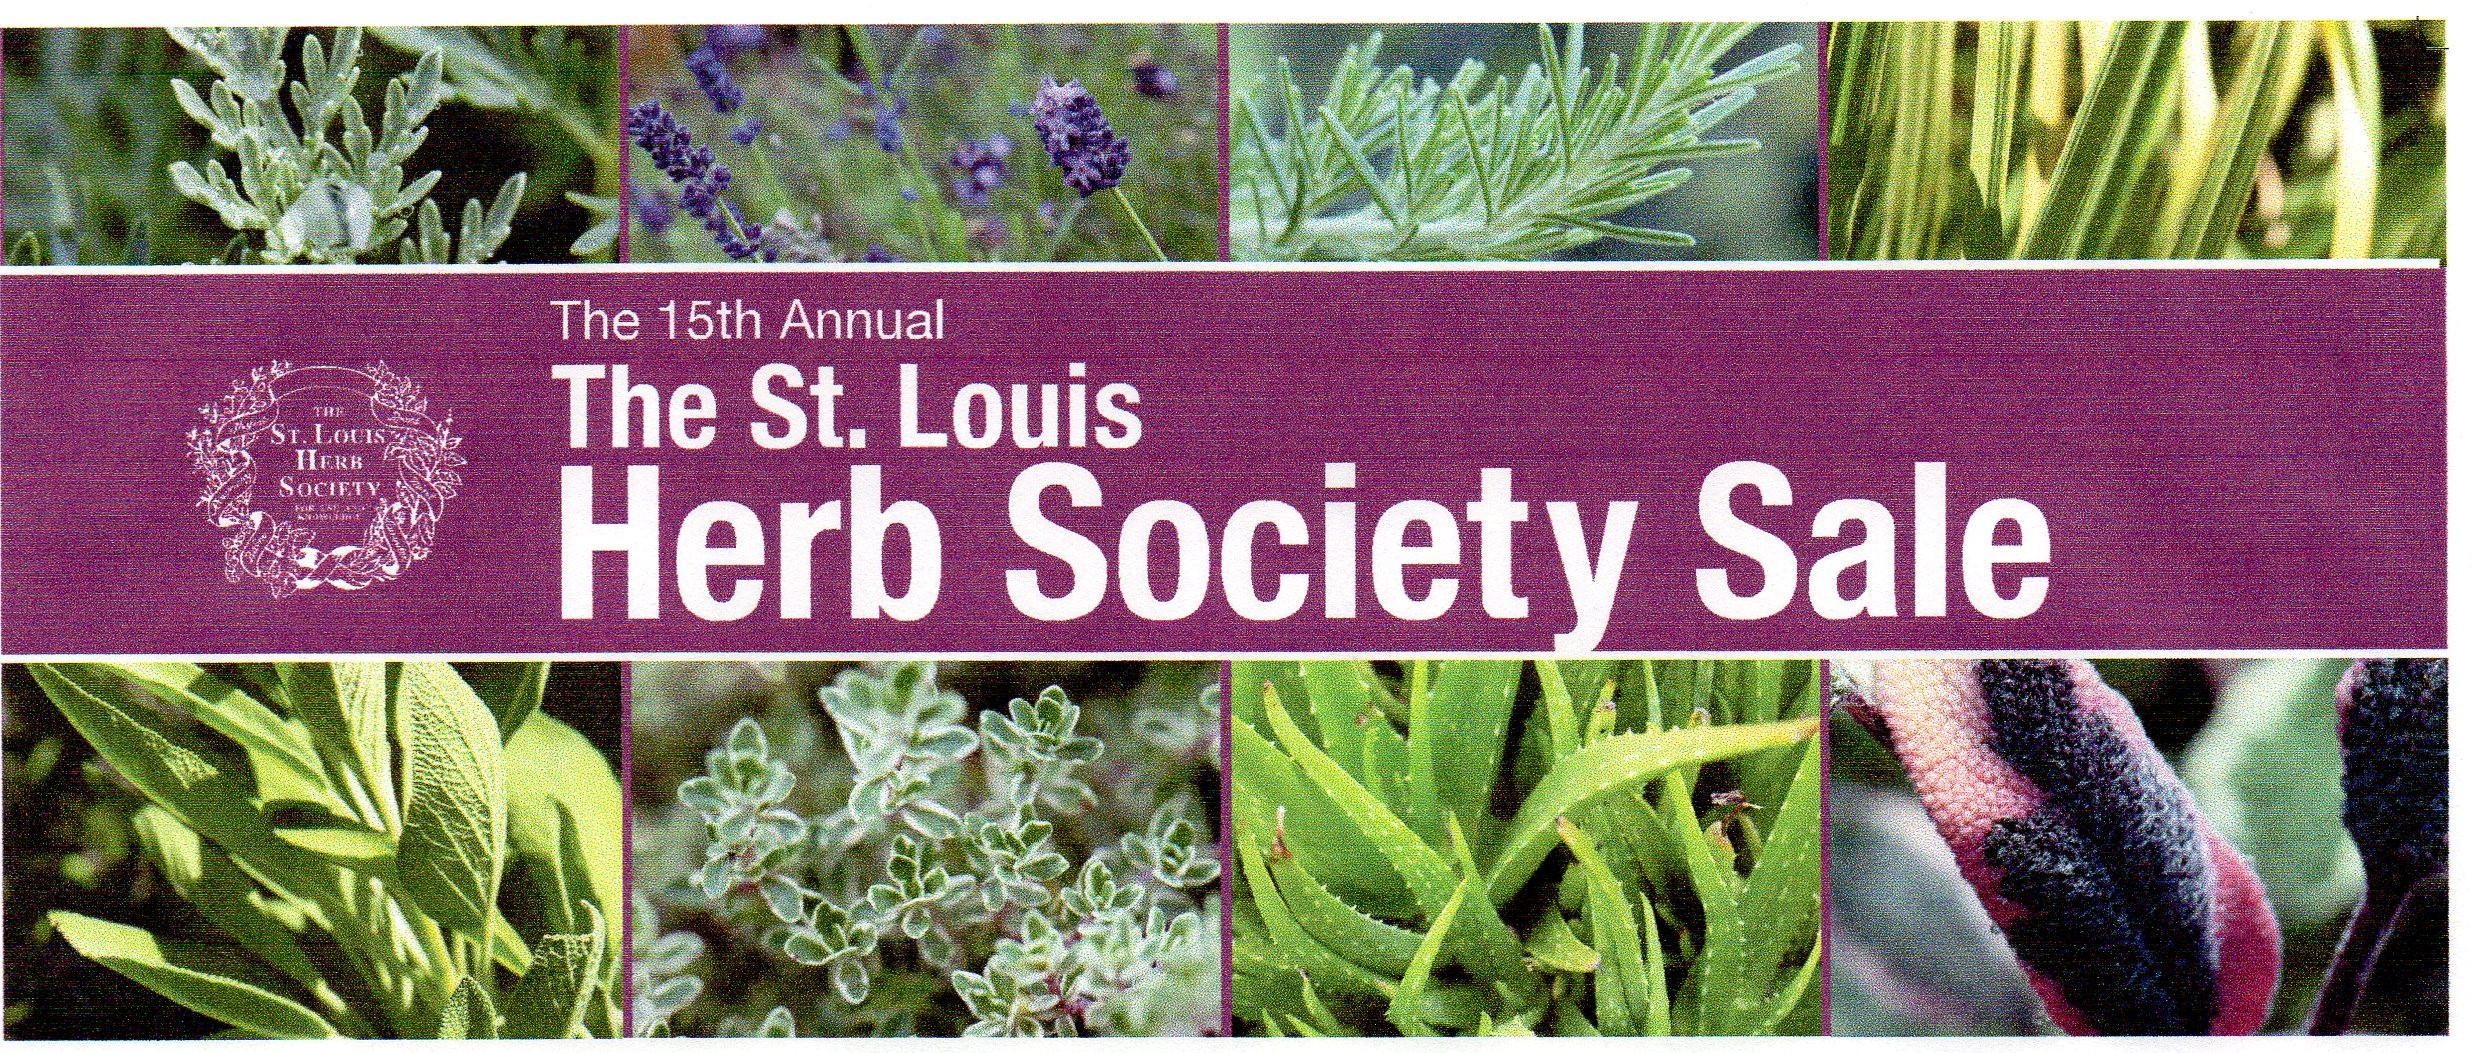 St. Louis Herb Society Sale